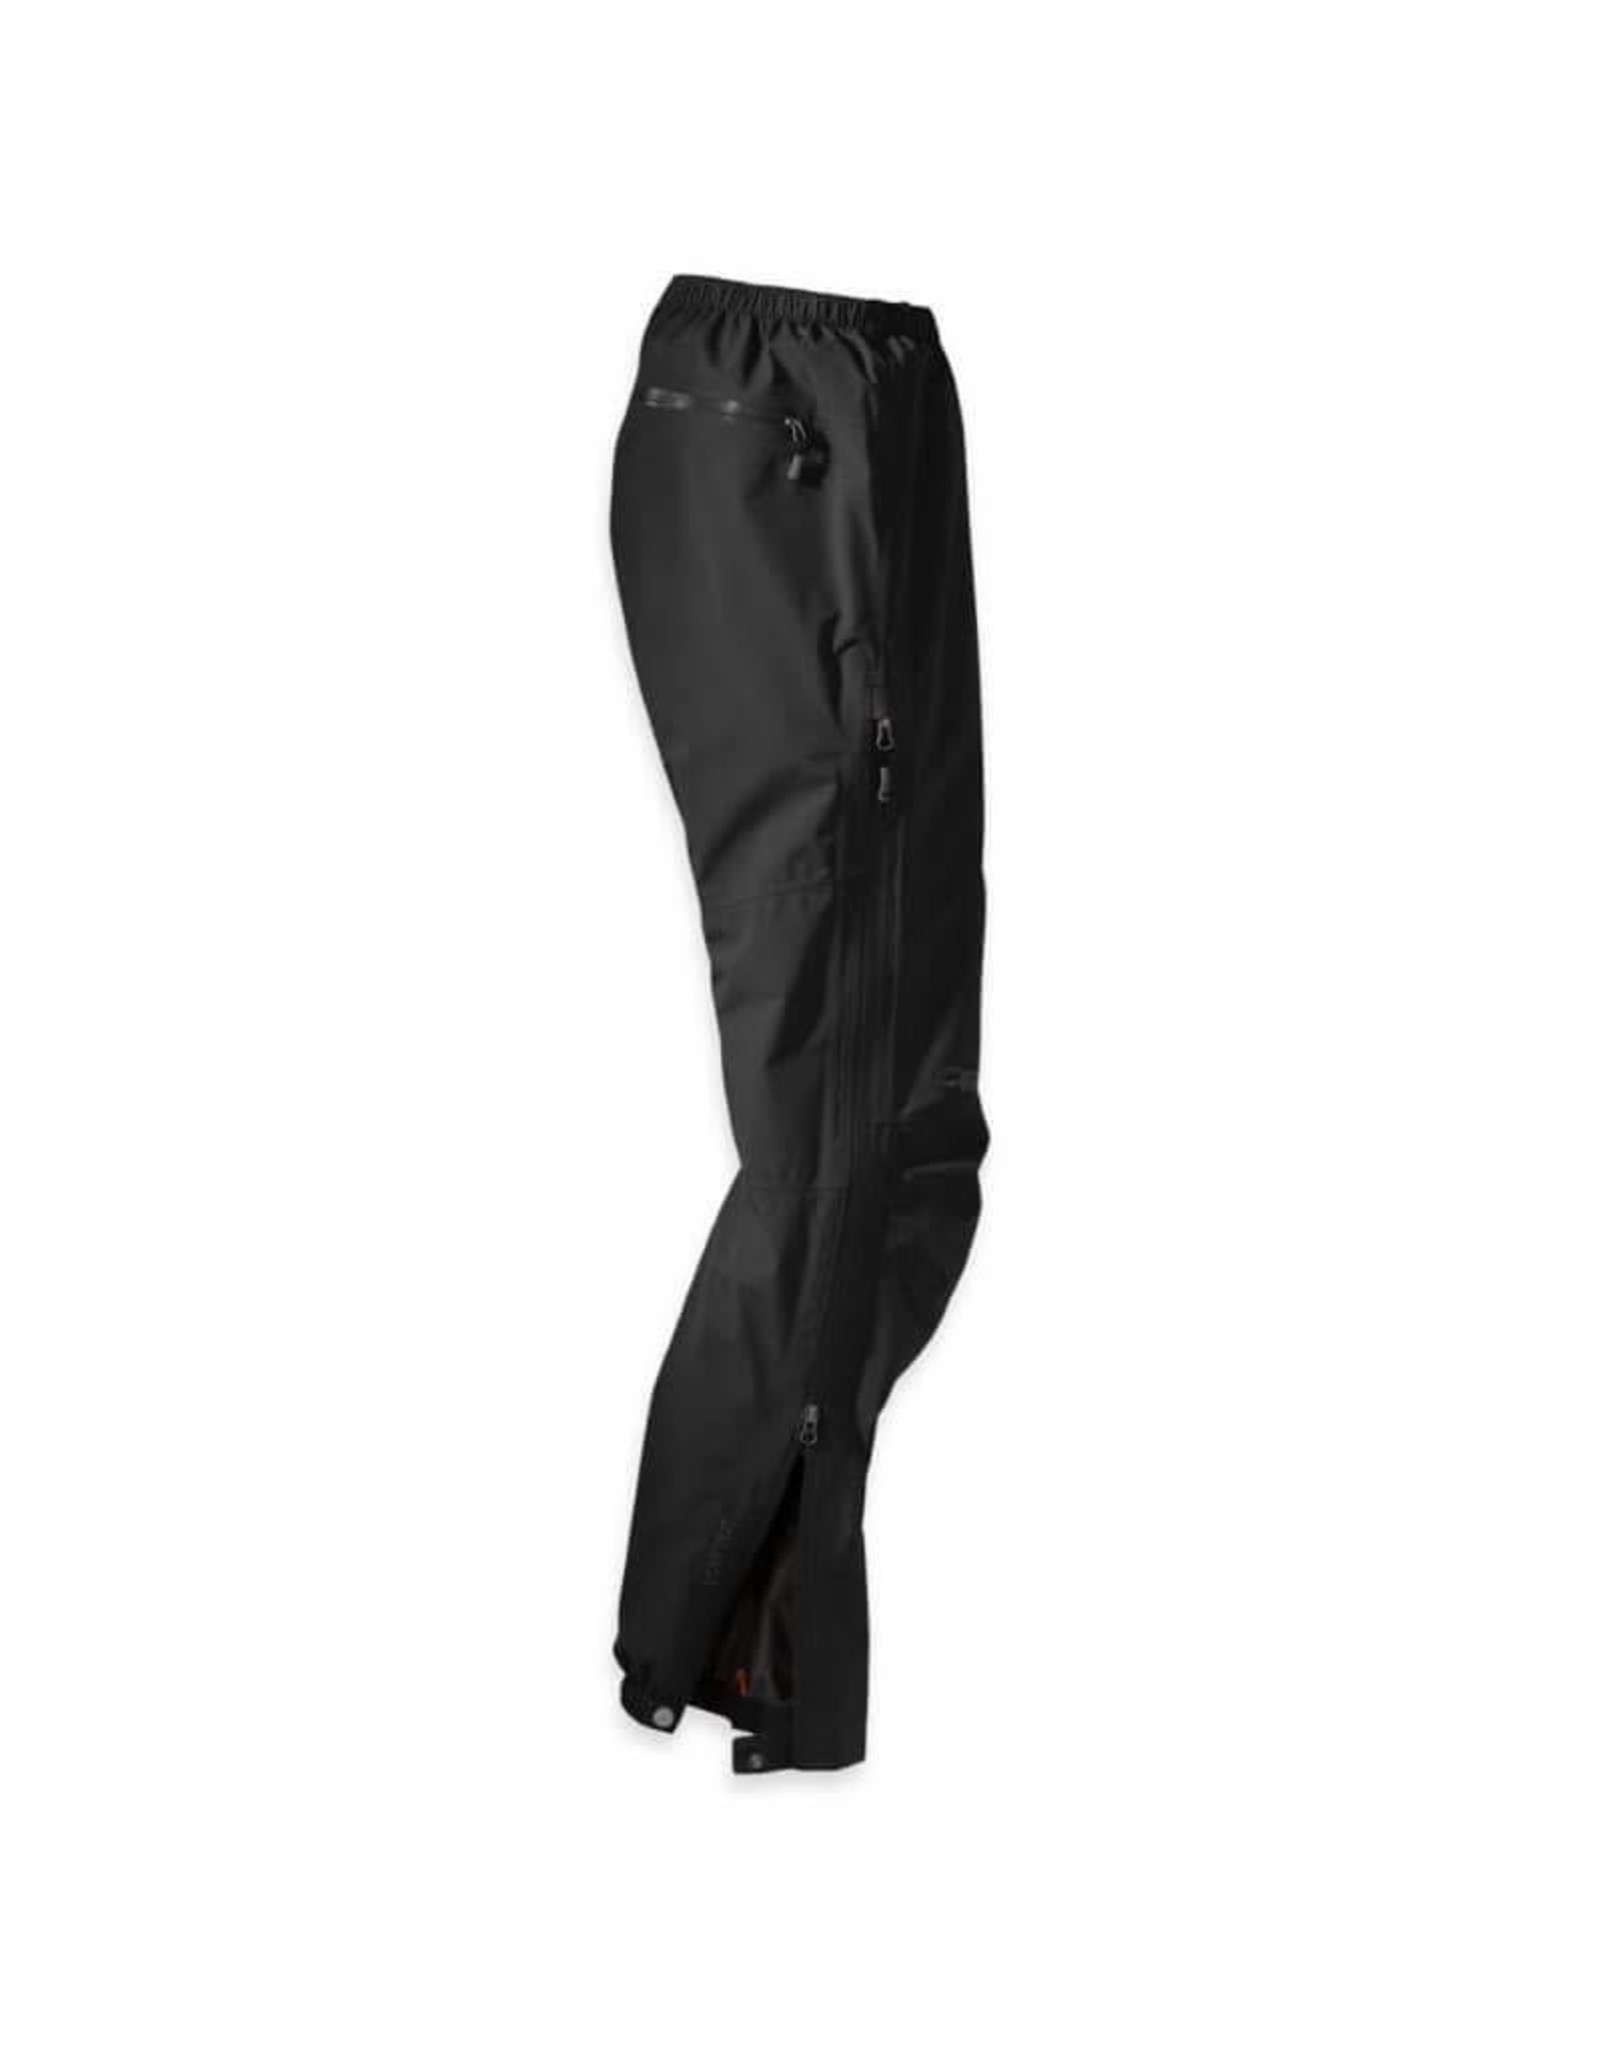 Outdoor Research Outdoor Research Foray Pants - Men